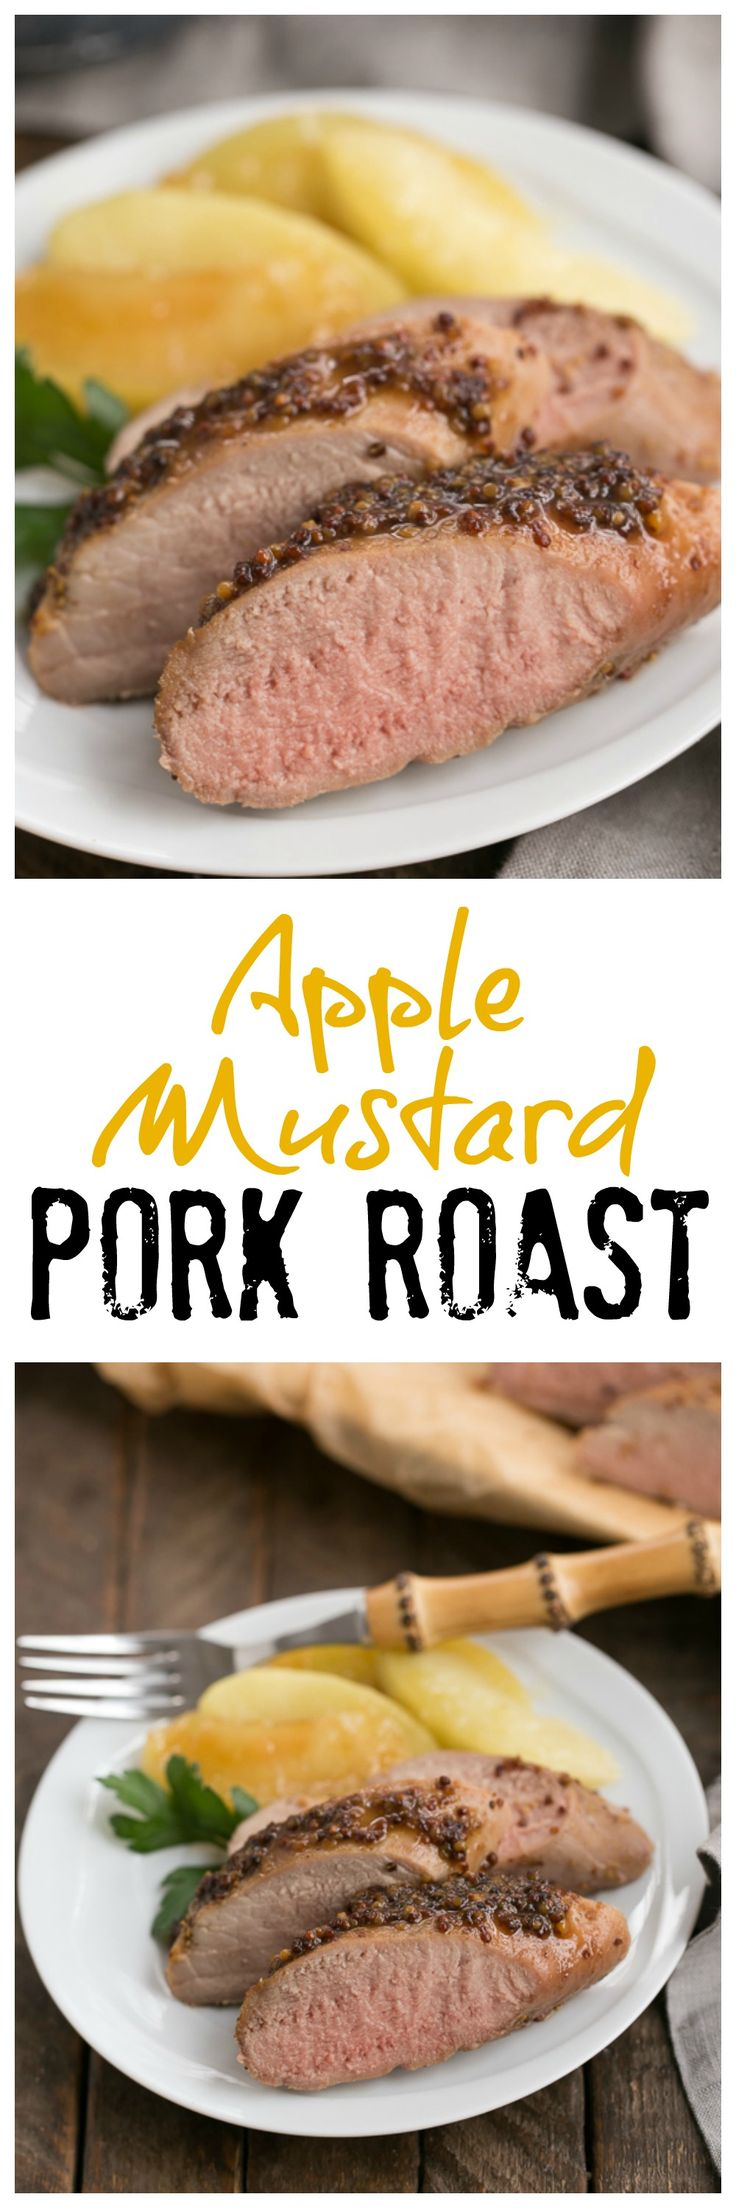 Apple Mustard Pork Tenderloin | A quick entree with a flavorful apple cider and grainy mustard based glaze @lizzydo